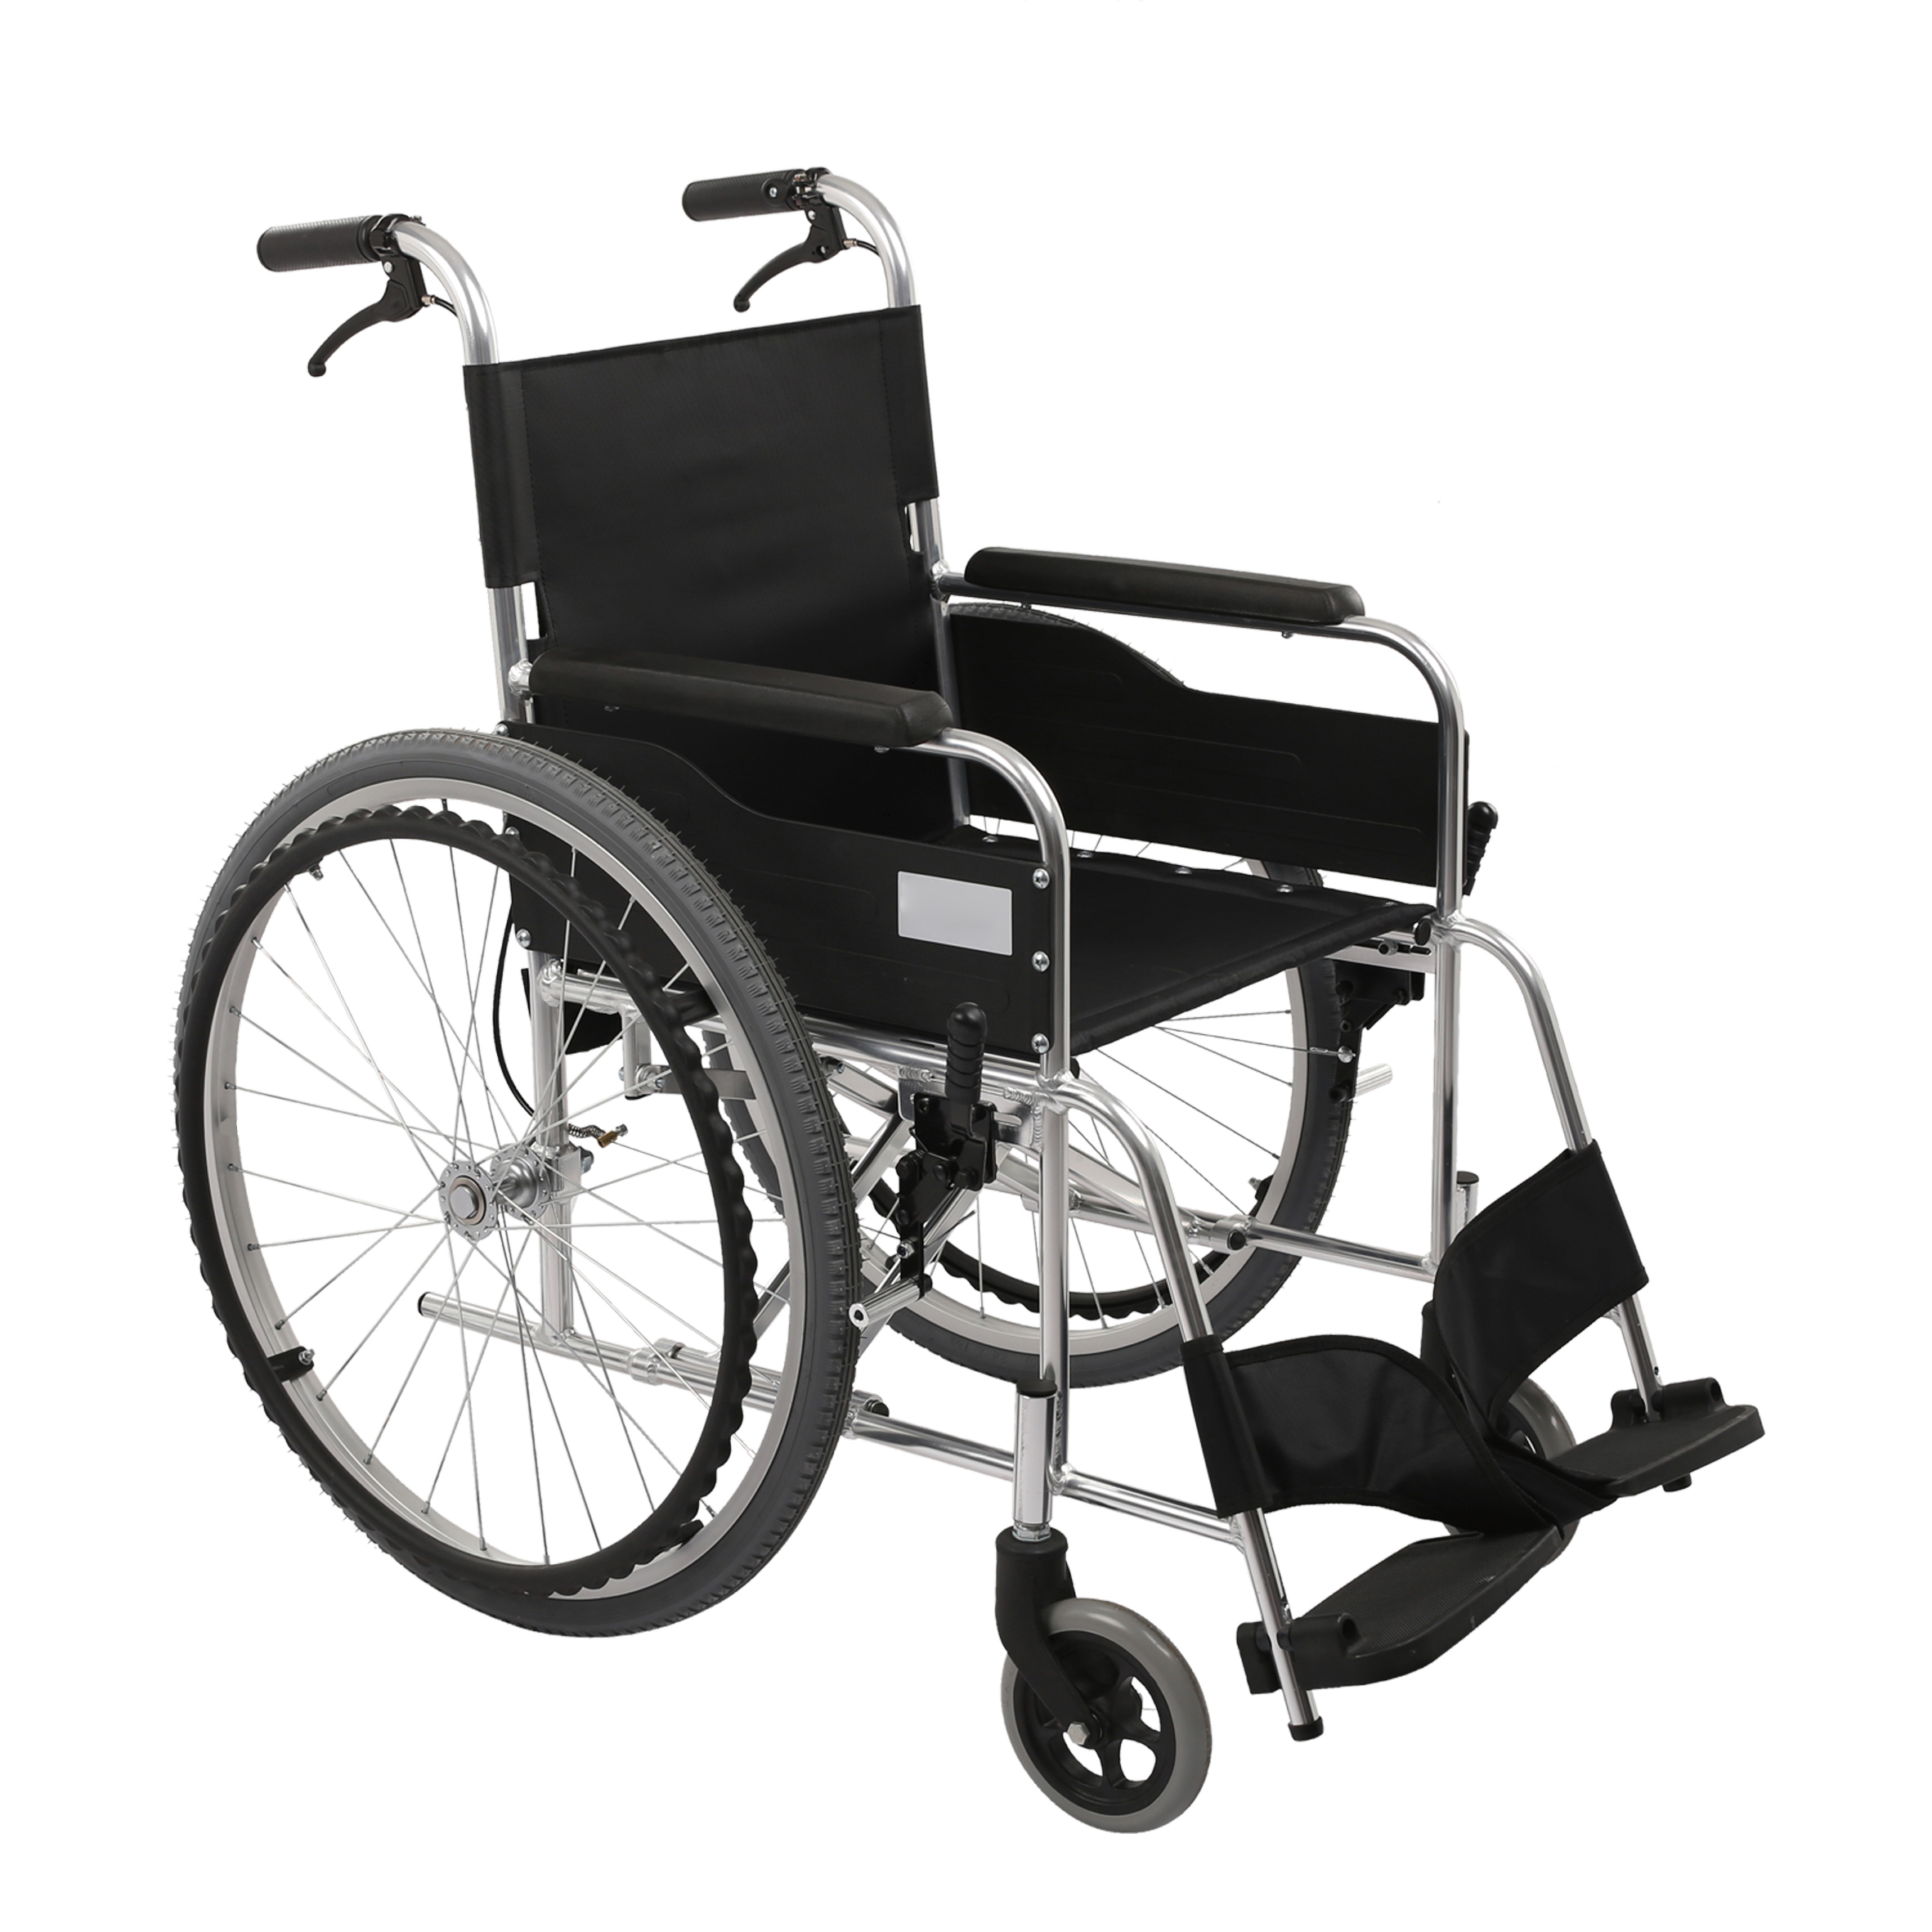 THE IMPORTANCE OF WHEELCHAIRS TO HELP PATIENTS RECOVER